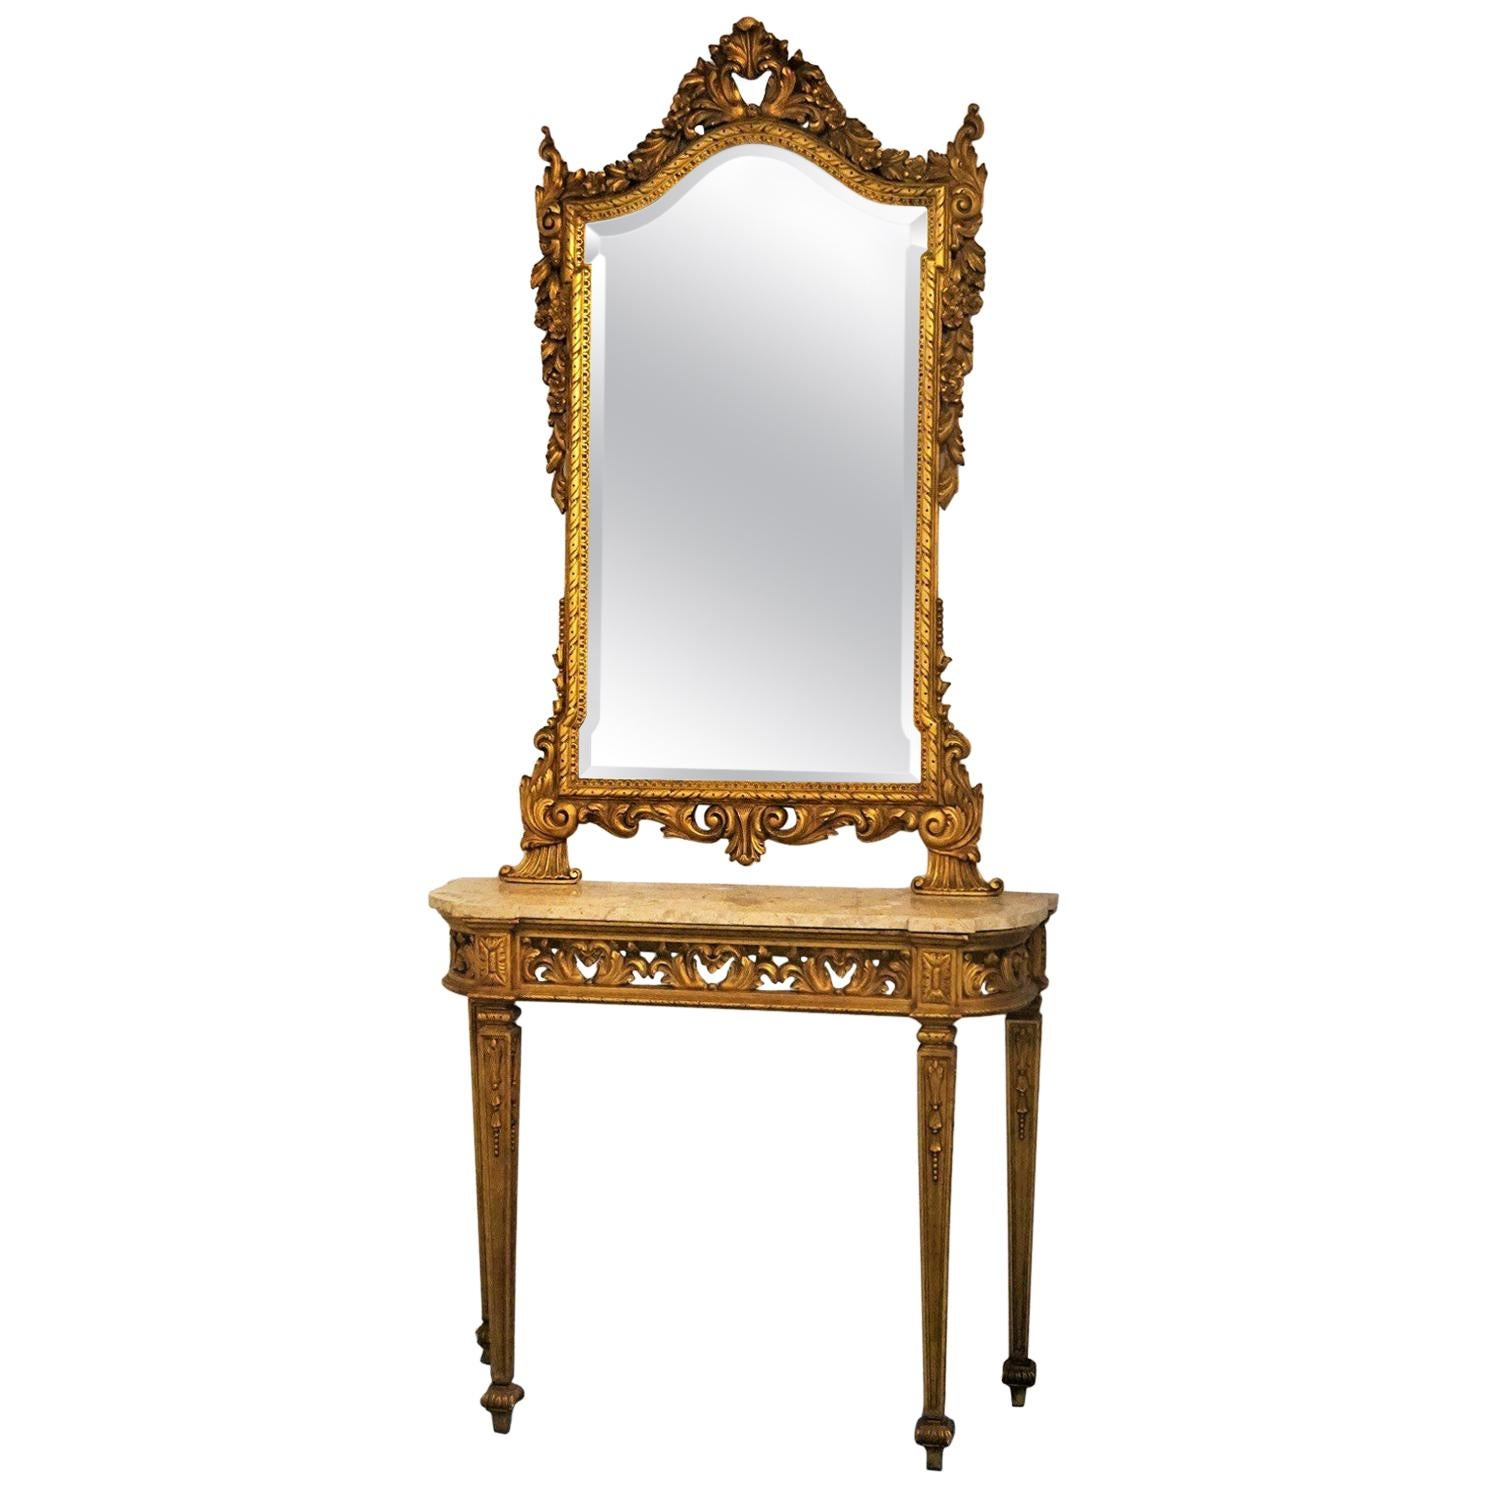 Italian 19th Century Louis XVI Style Giltwood Console Table and Mirror